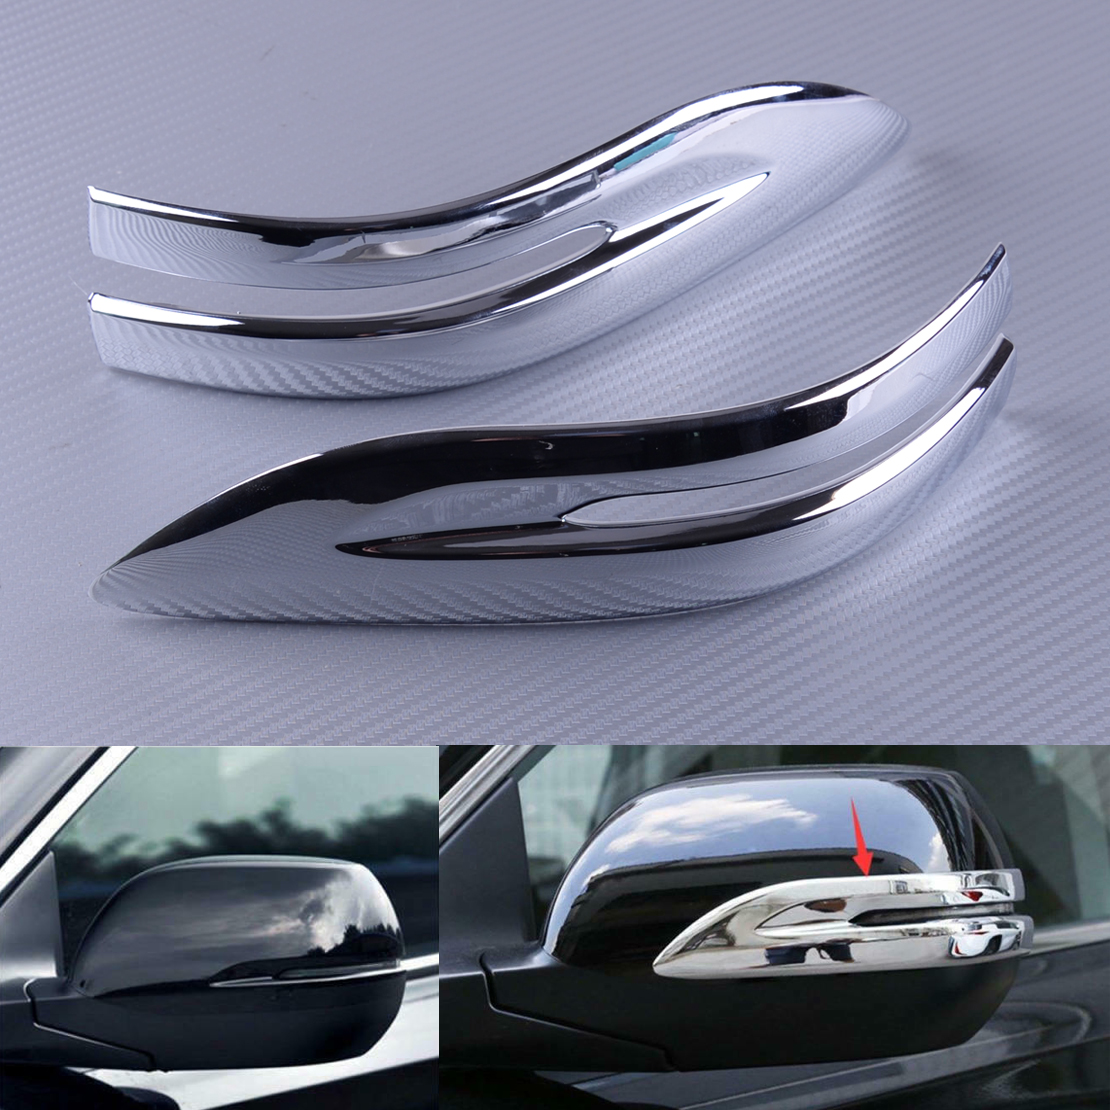 Stainless Steel Rear Corner Bumper Cover Trim For Honda CR-V CRV 2017-2018 Set